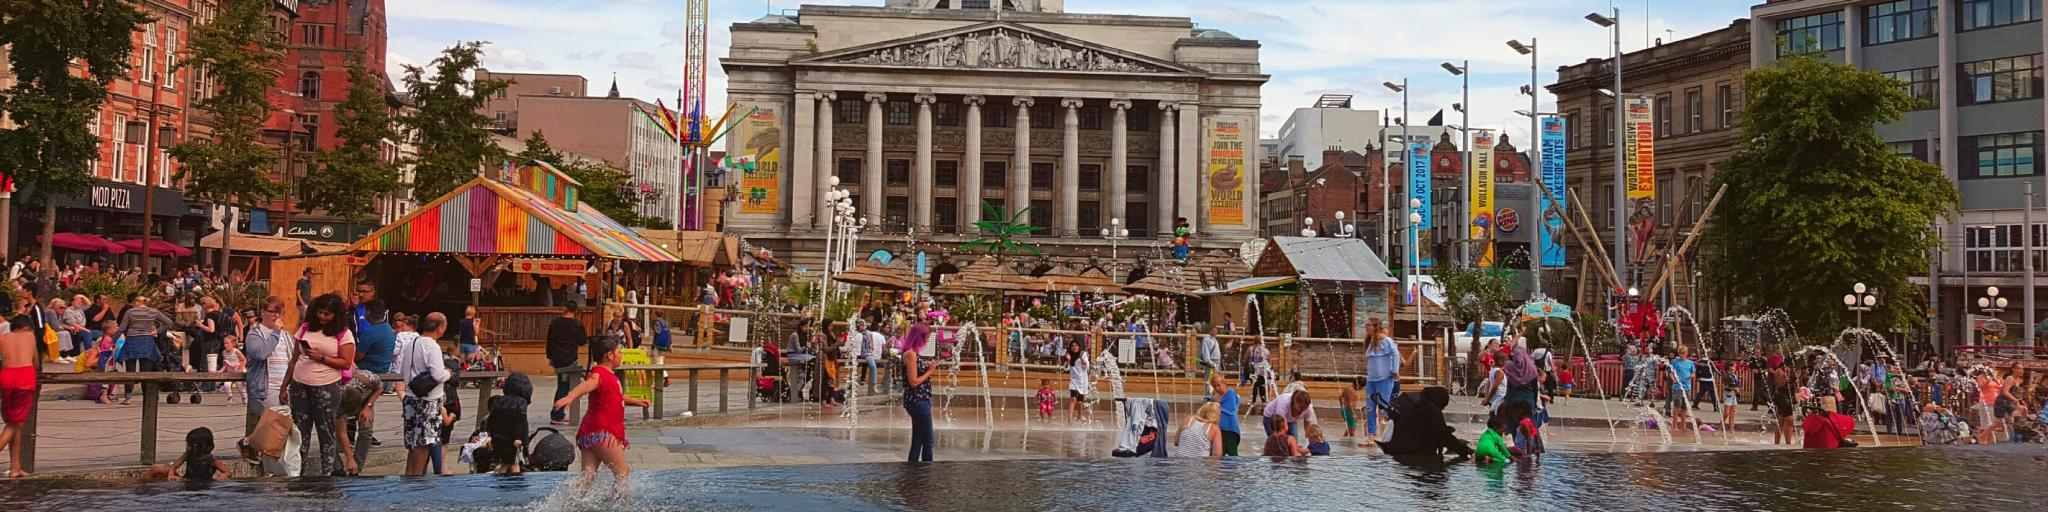 People play in the fountain in front of Nottingham Town Hall in Market Square